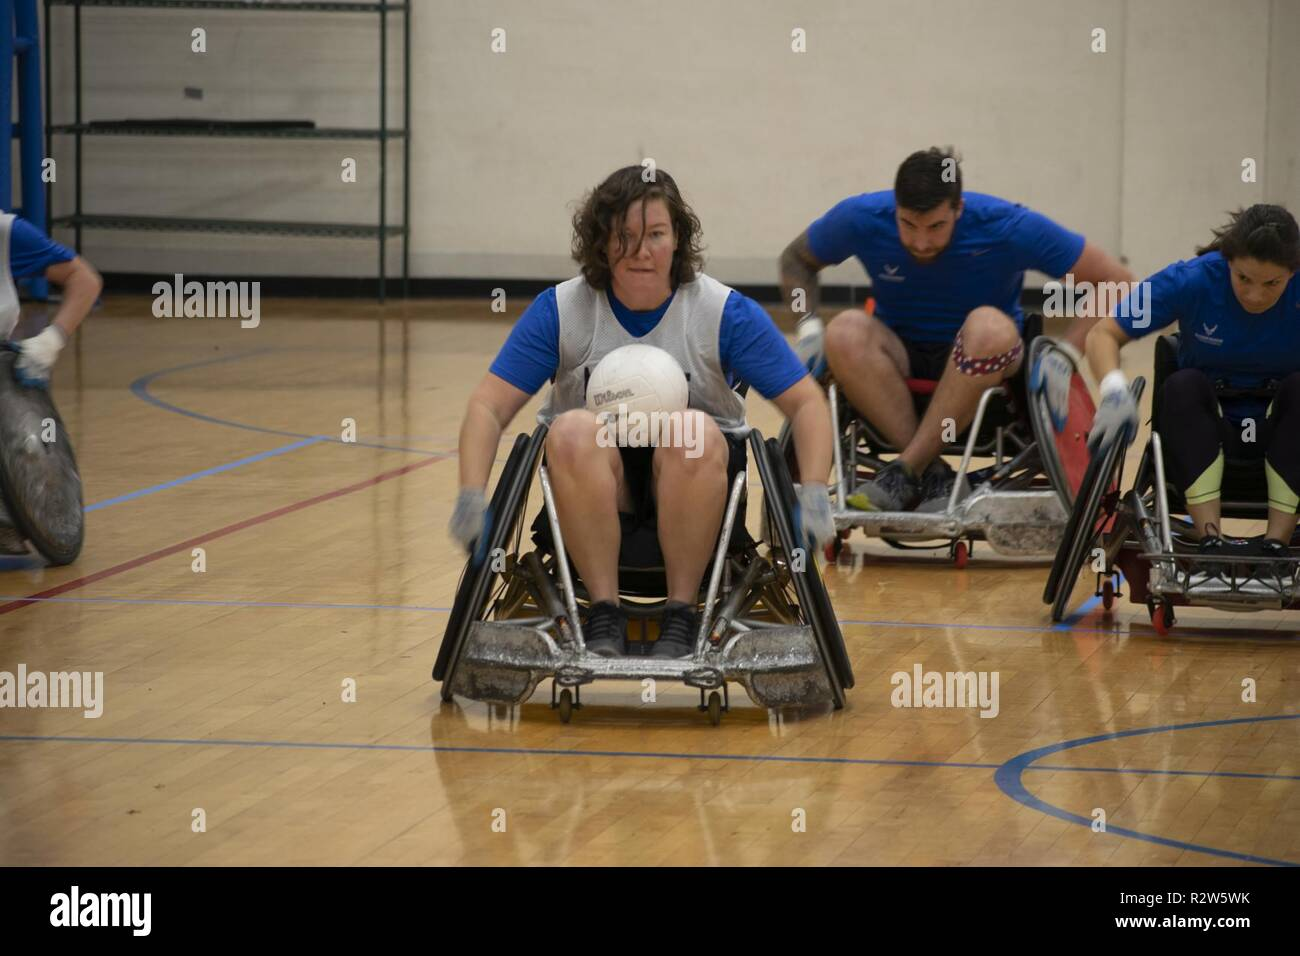 Warrior Games 2020.Retired Captain Kelly Patterson Moves Quickly Up The Court